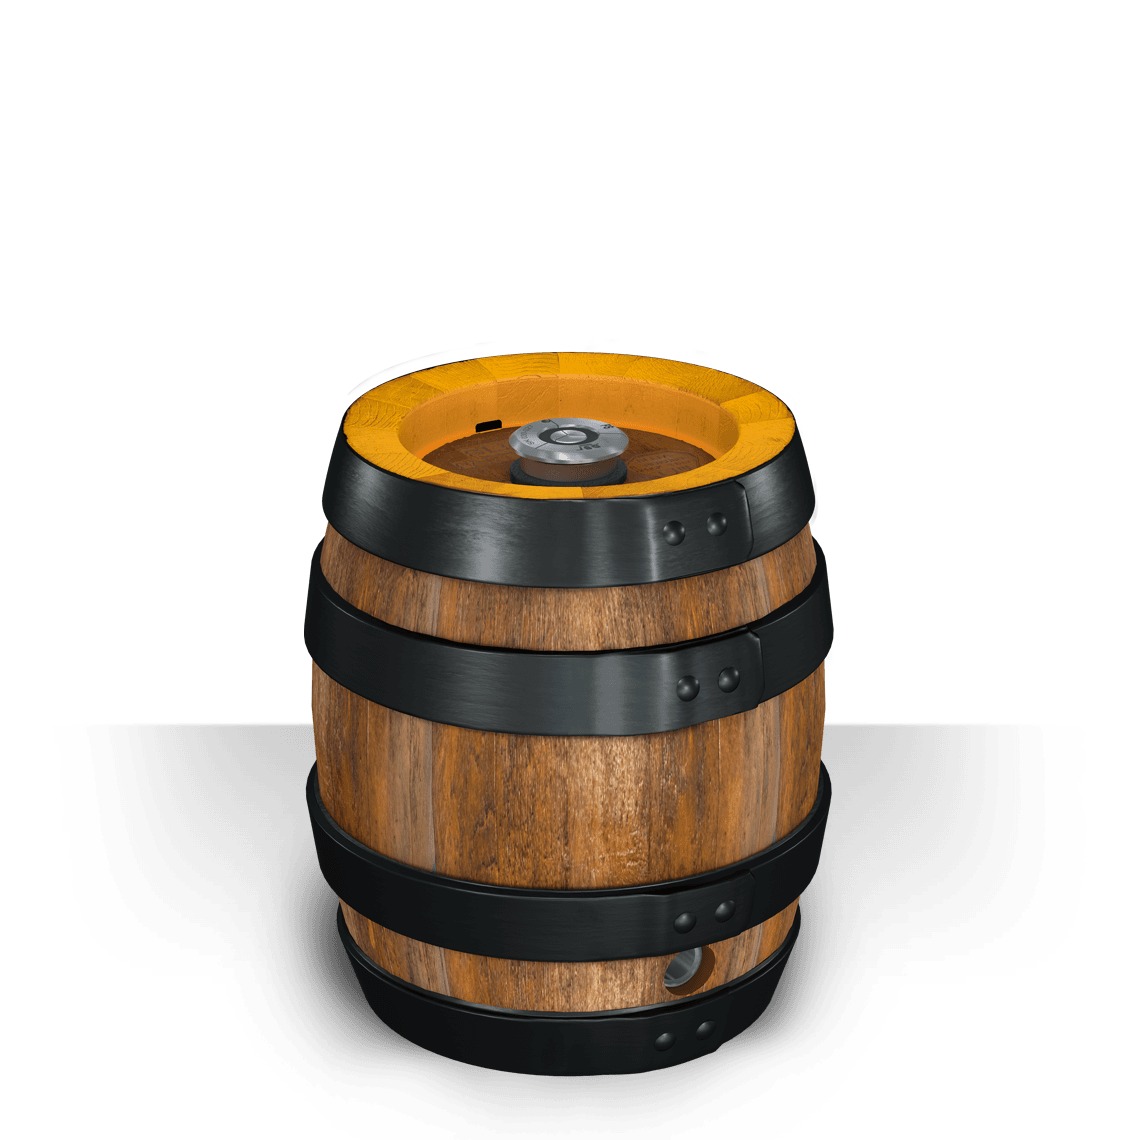 Keg drawing wood barrel. The party stainless steel